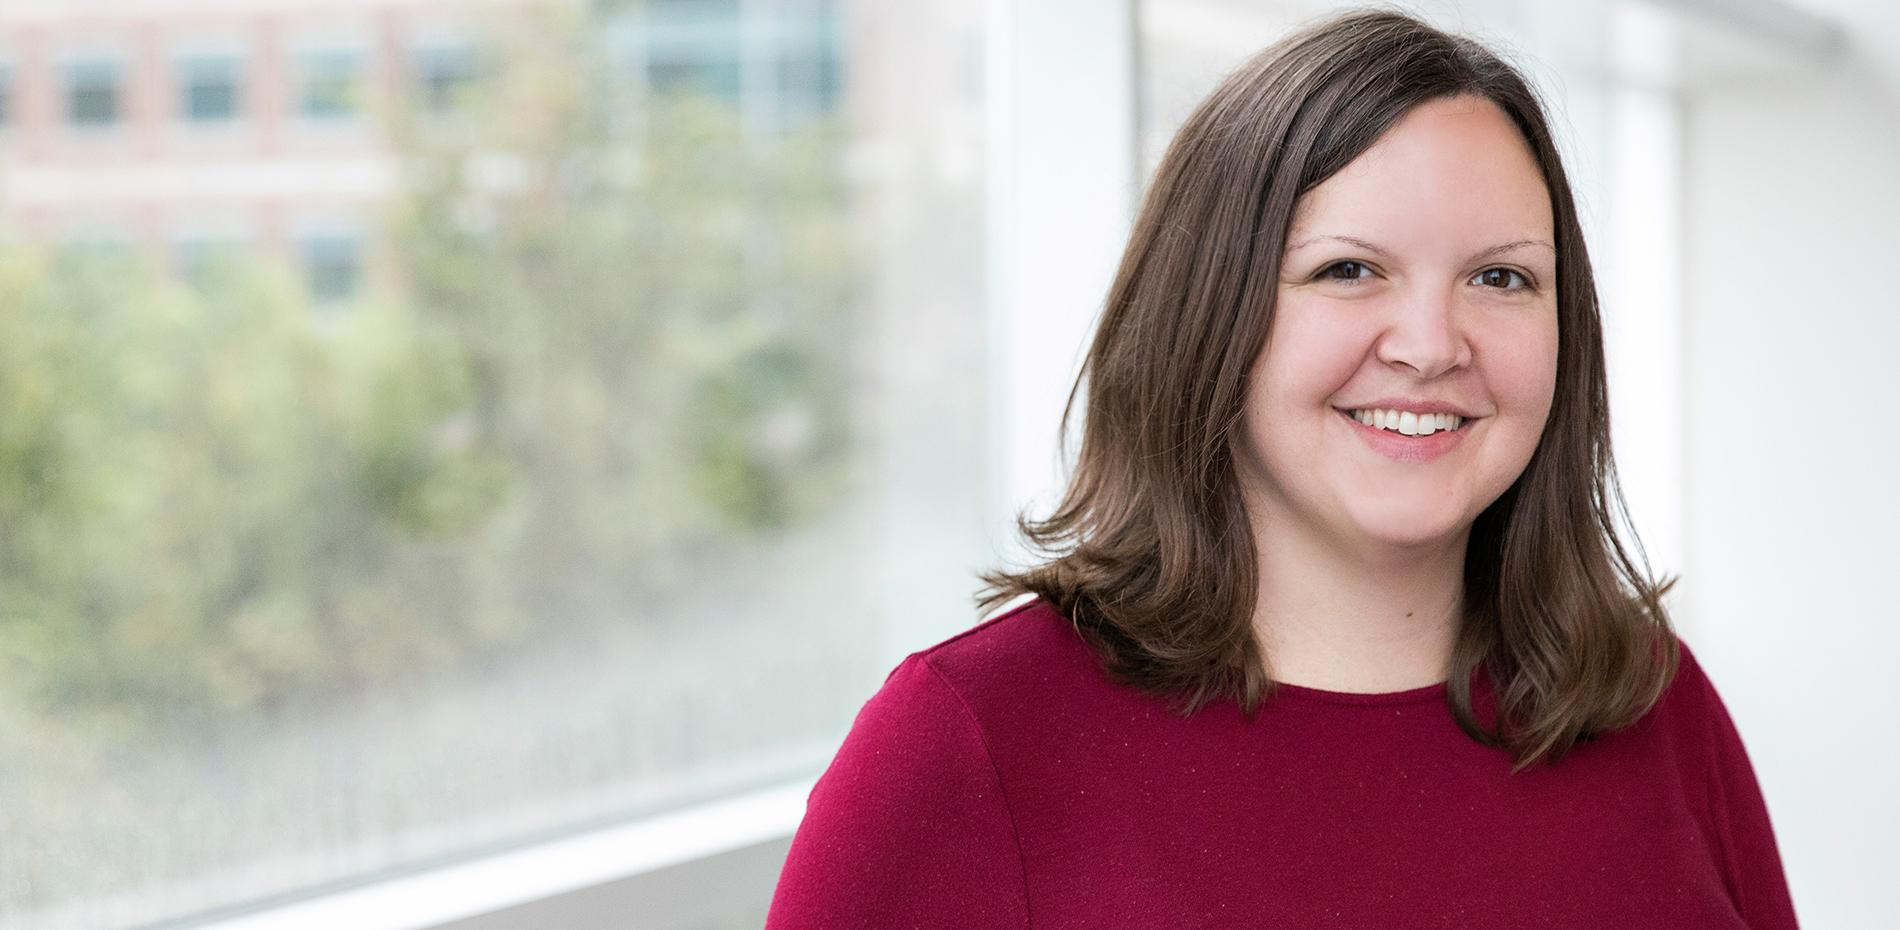 Amanda Dannemiller, graduate of Georgia Tech's Professional Master's in Manufacturing Leadership, reflects on how the program led to her promotion from process engineer to production manager within eight months.